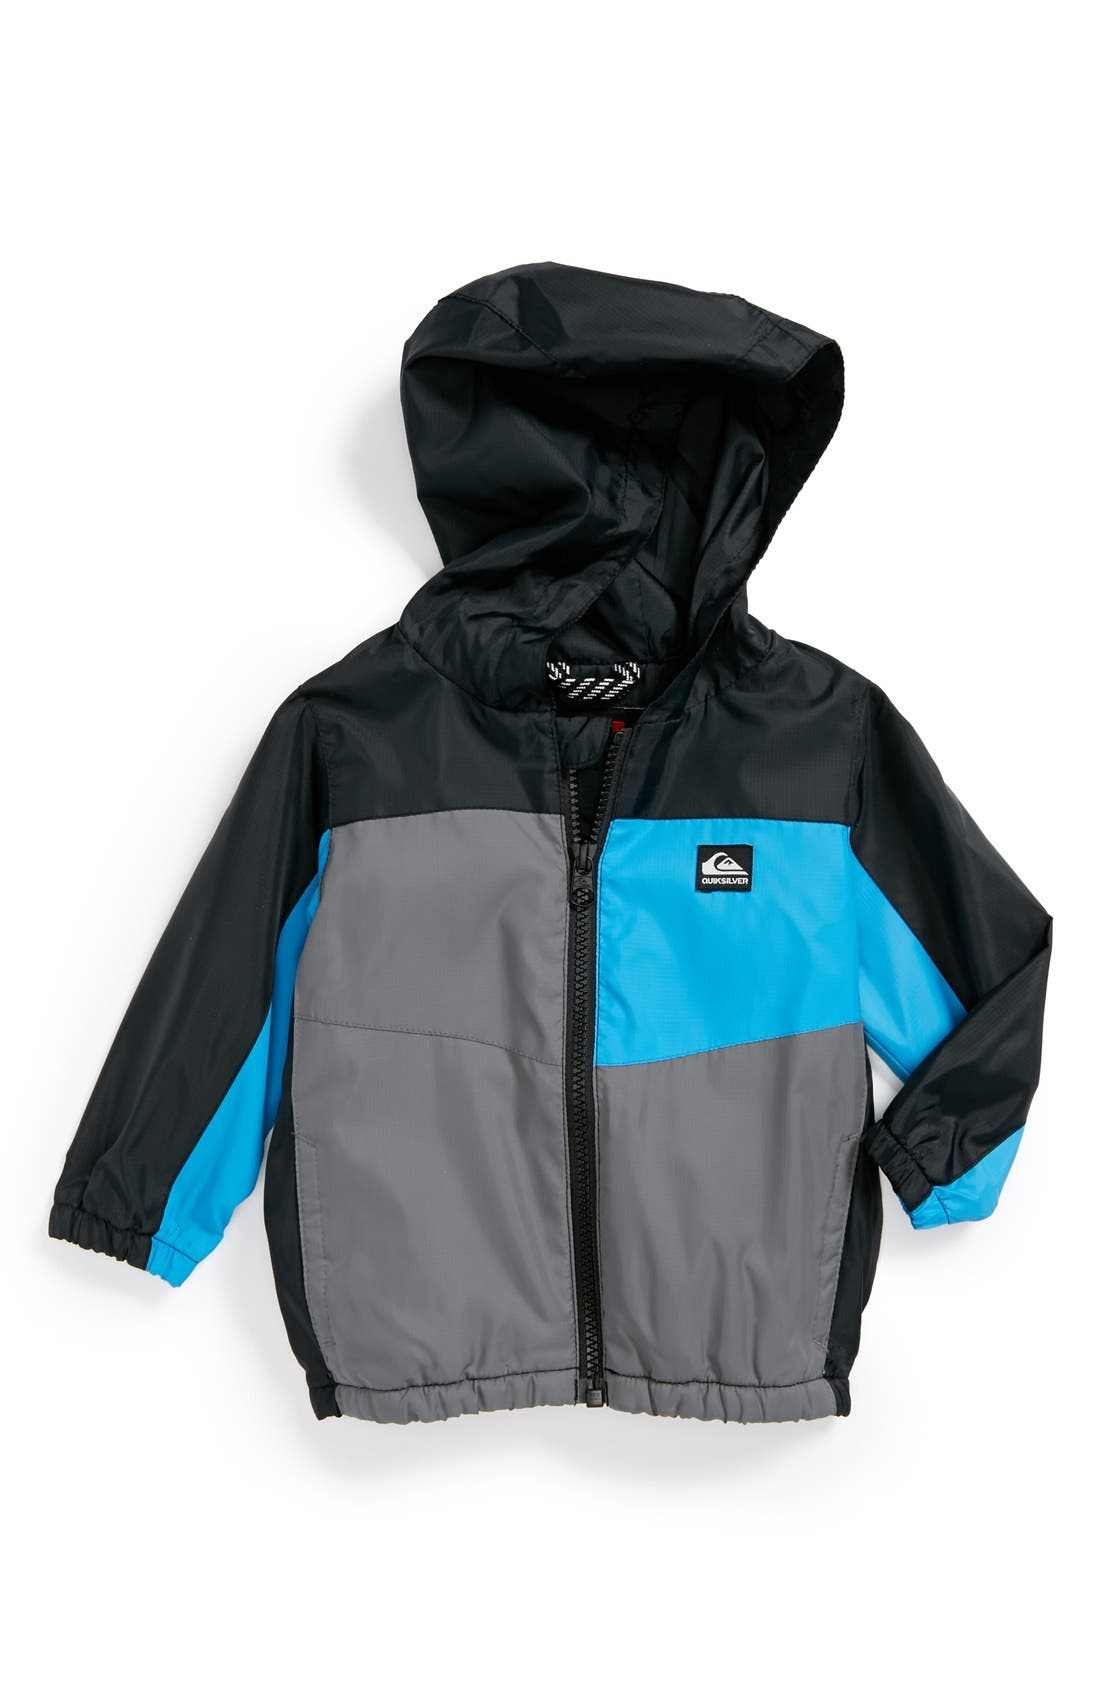 Alternate Image 1 Selected - Quiksilver 'Byron' Water Repellent Full Zip Jacket (Baby Boys)